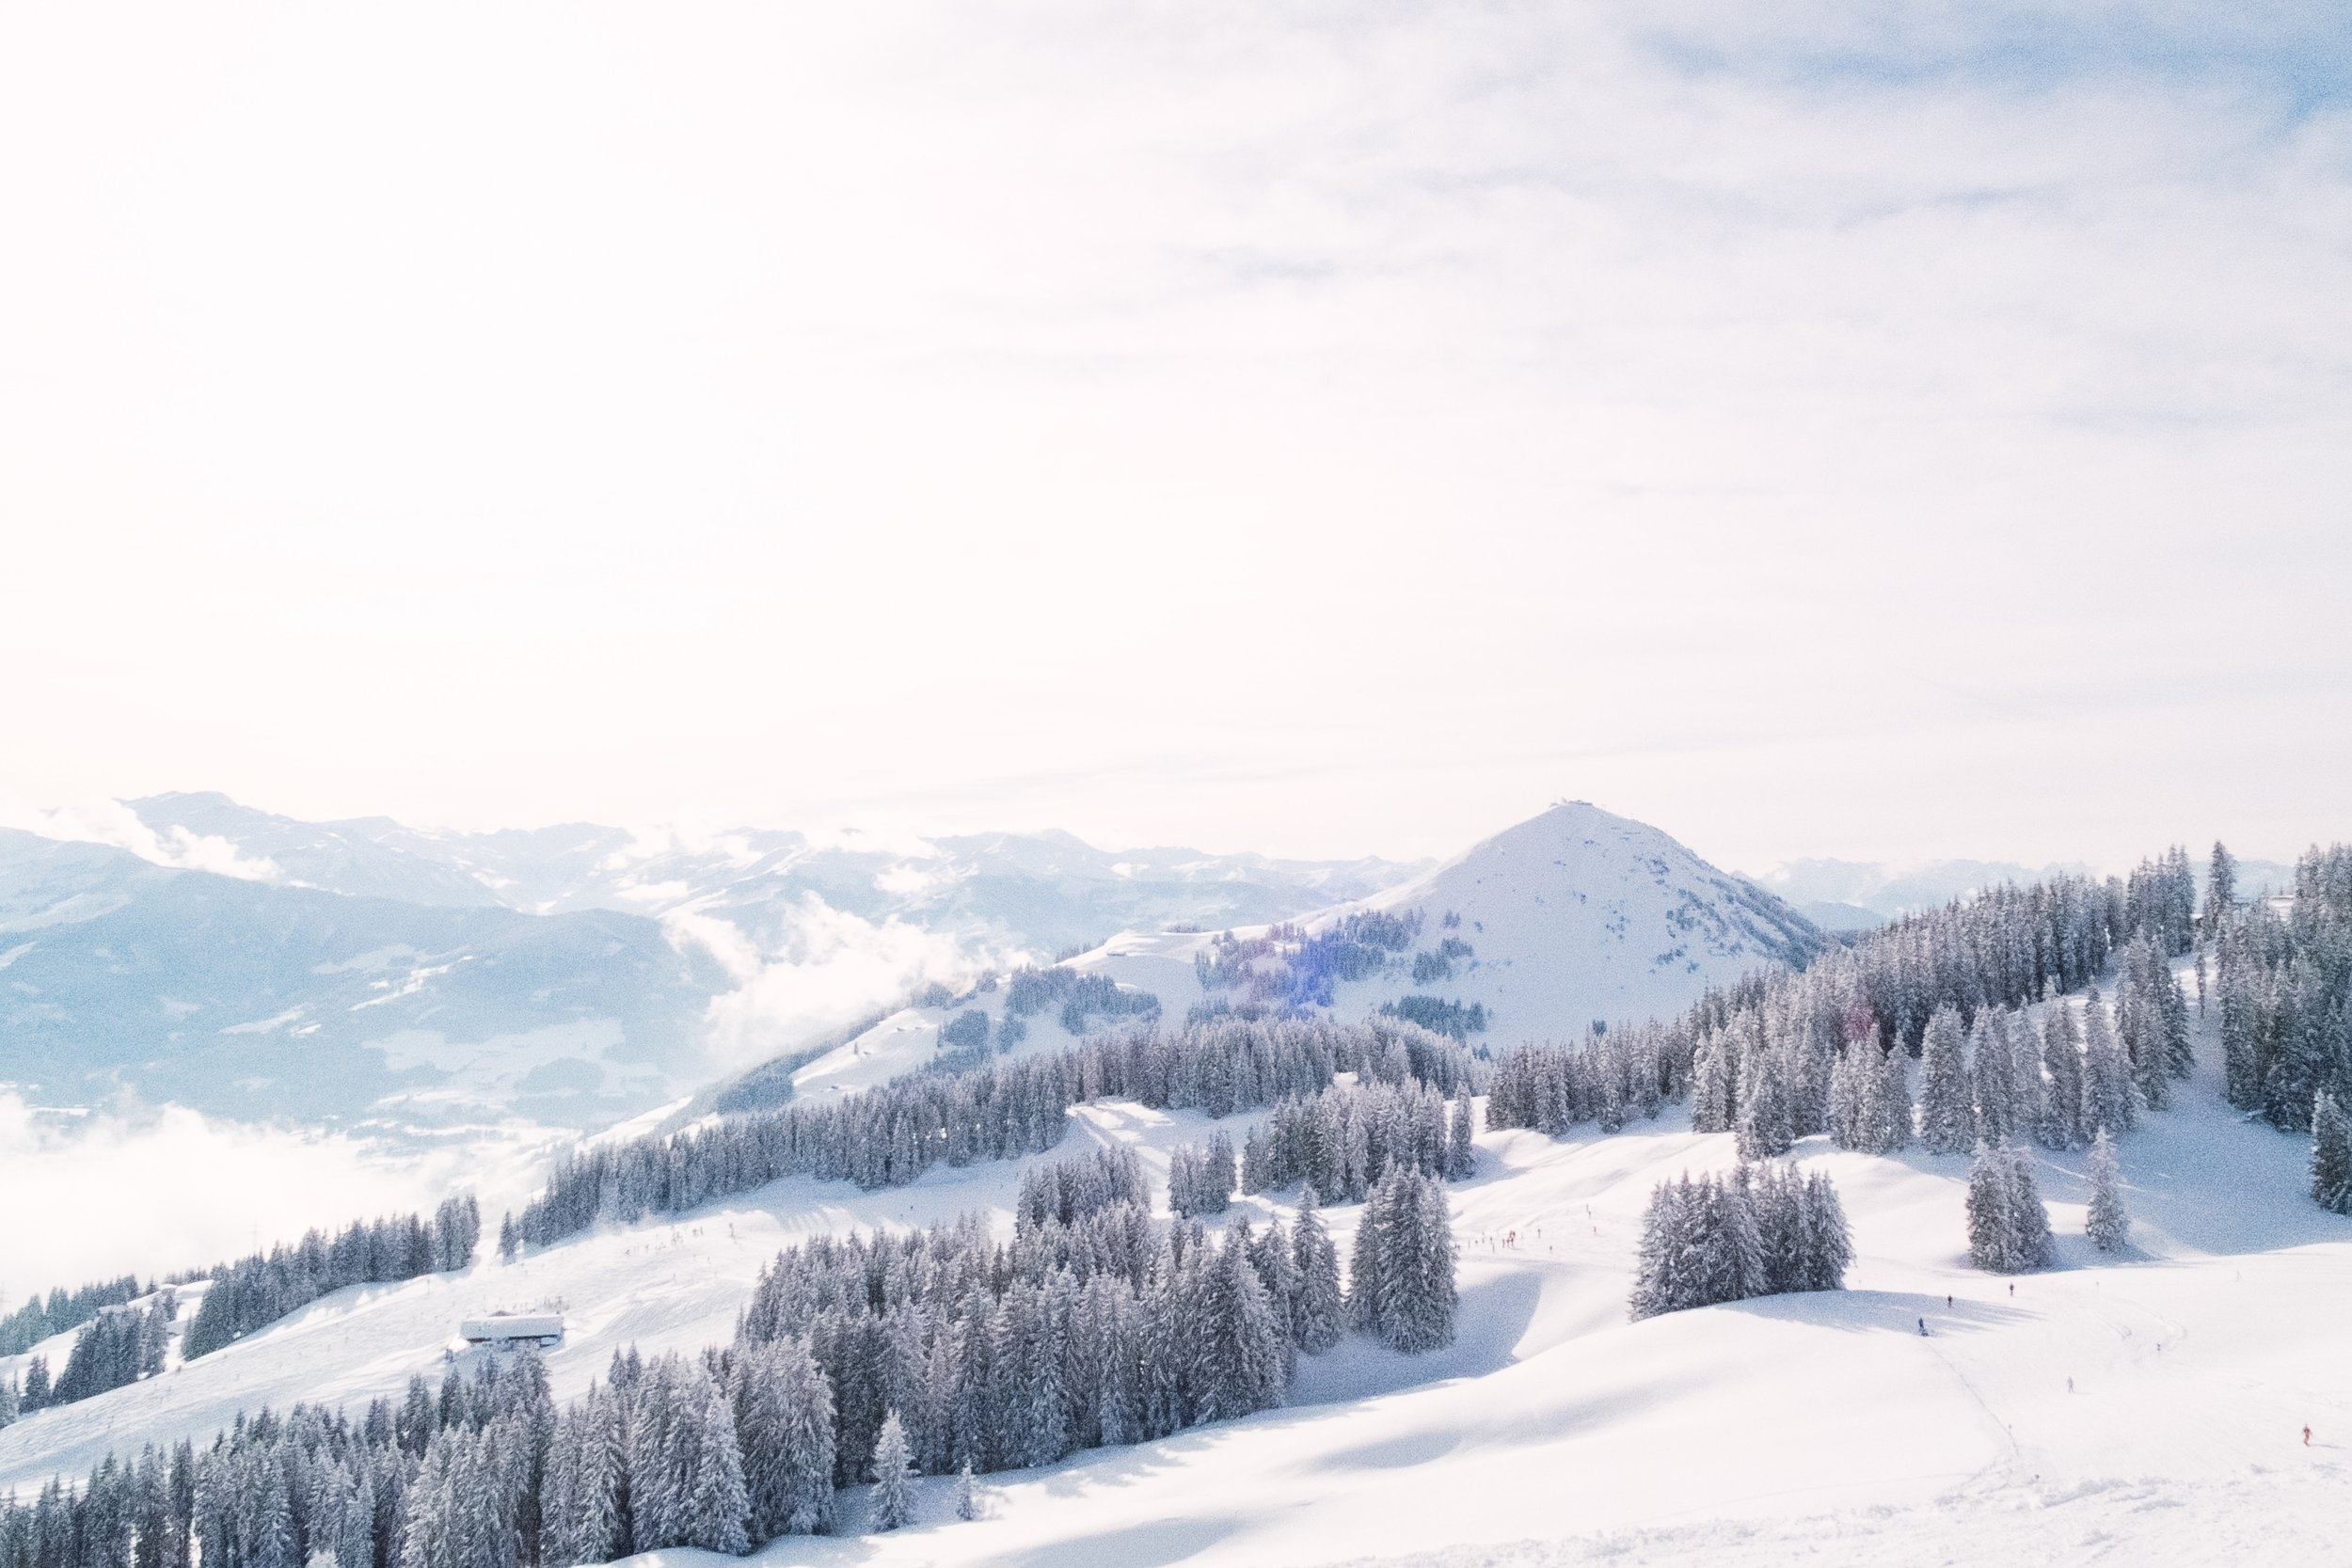 Gulmarg - Wild, raw and ungroomed, Kashmir's Gulmarg calls for those who really want to go off-piste in some of the highest skiable peaks in the world.